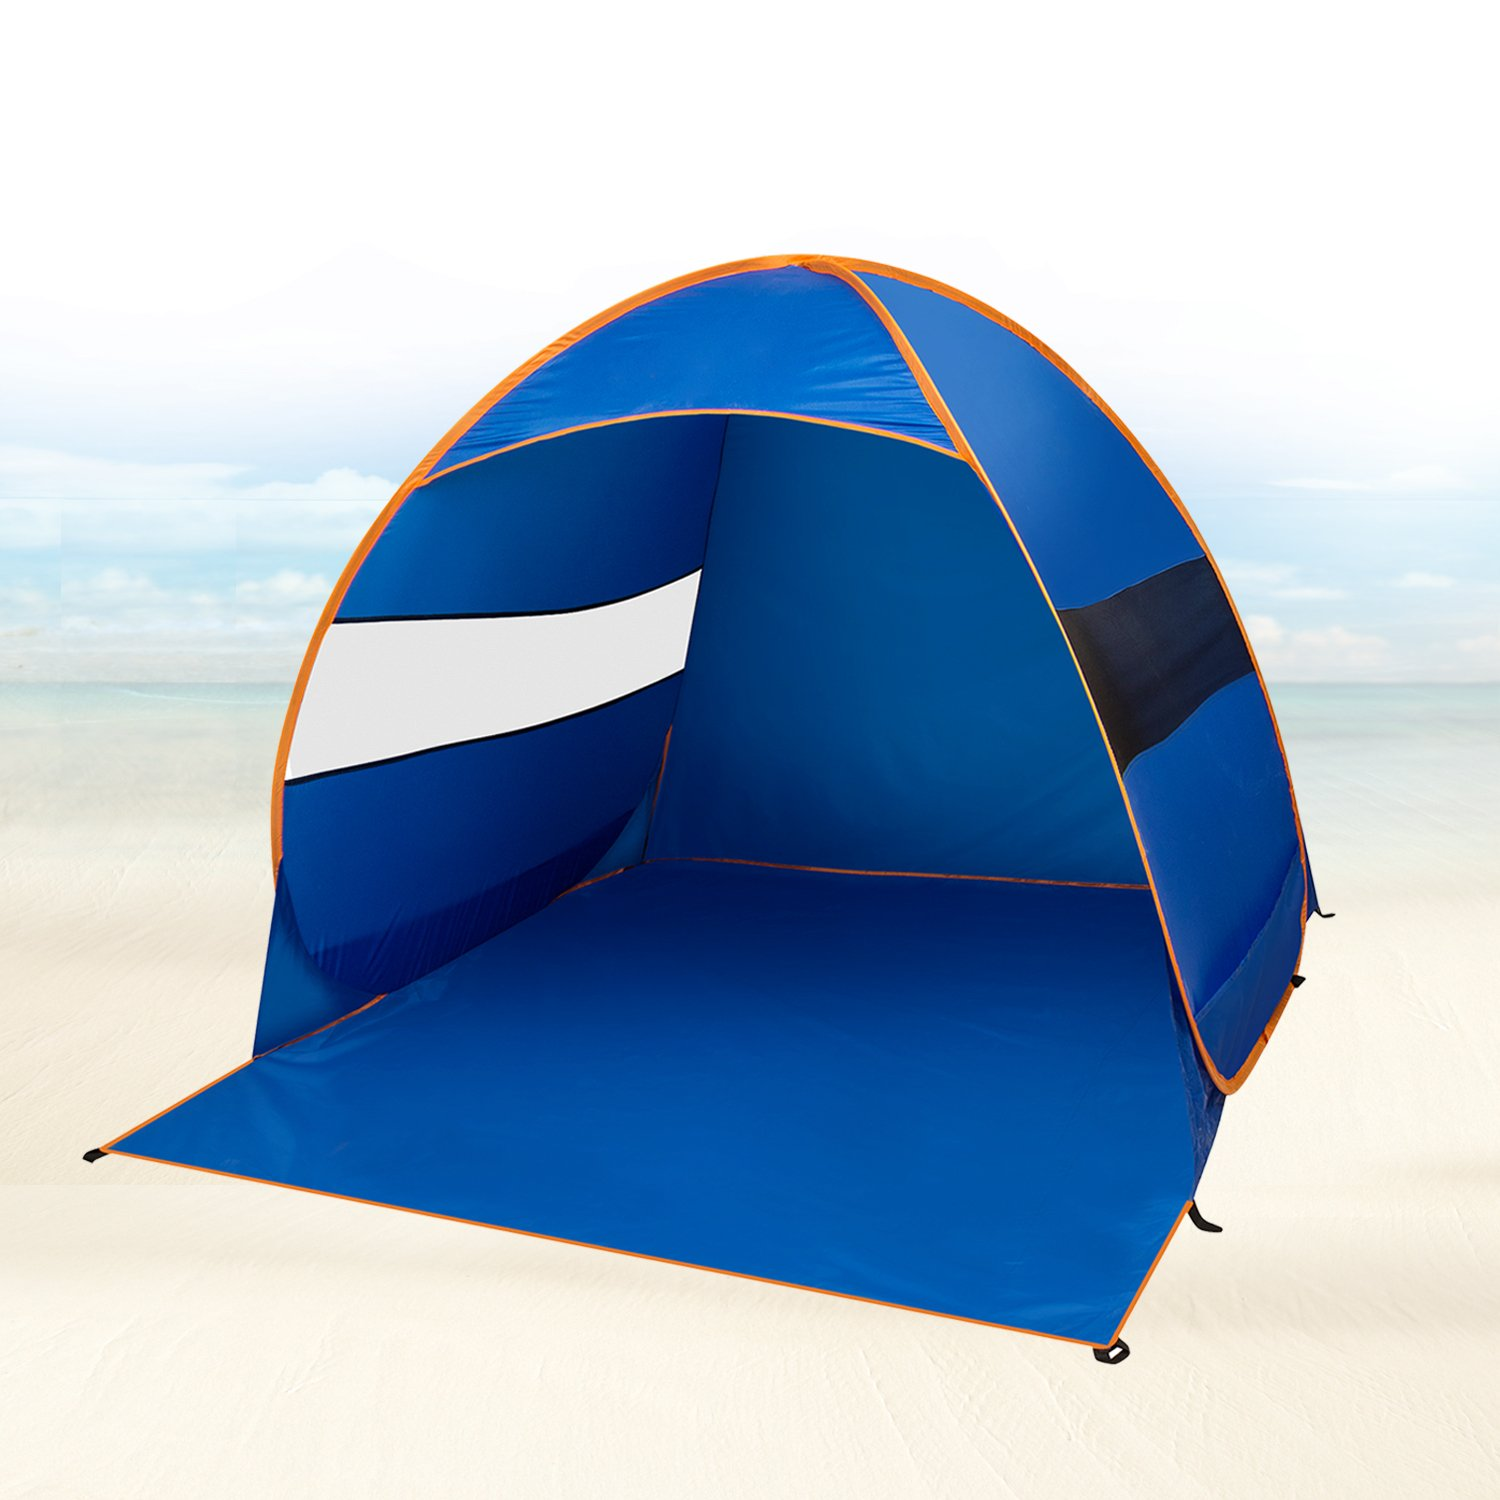 FiveJoy Instant Pop Up Cabana Beach Tent   Automatic Setup In Seconds    Strong UV